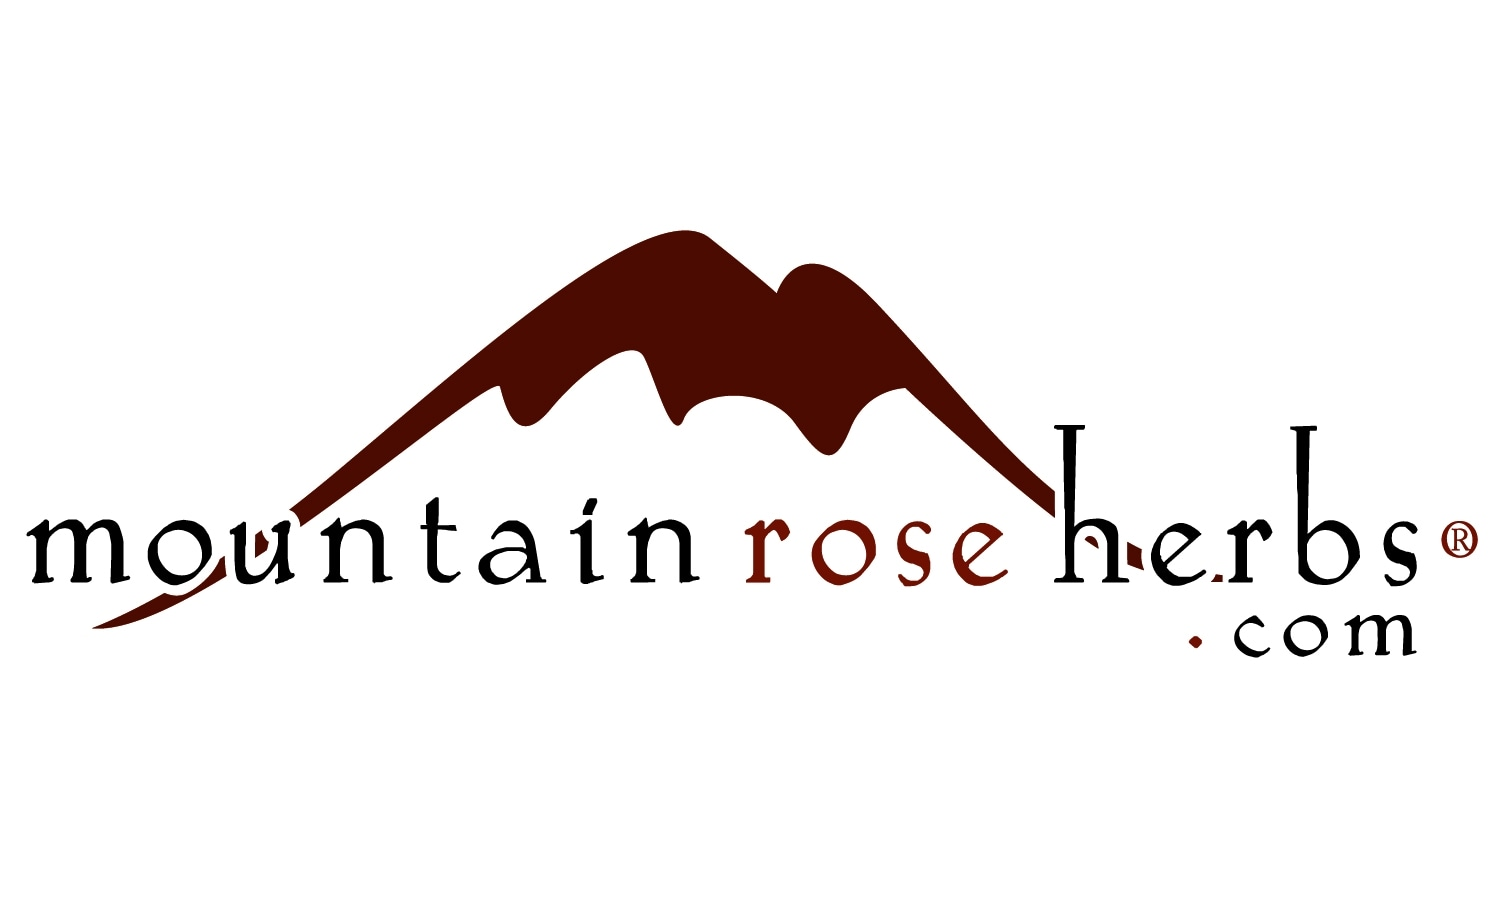 Mountain rose coupon code november 2018